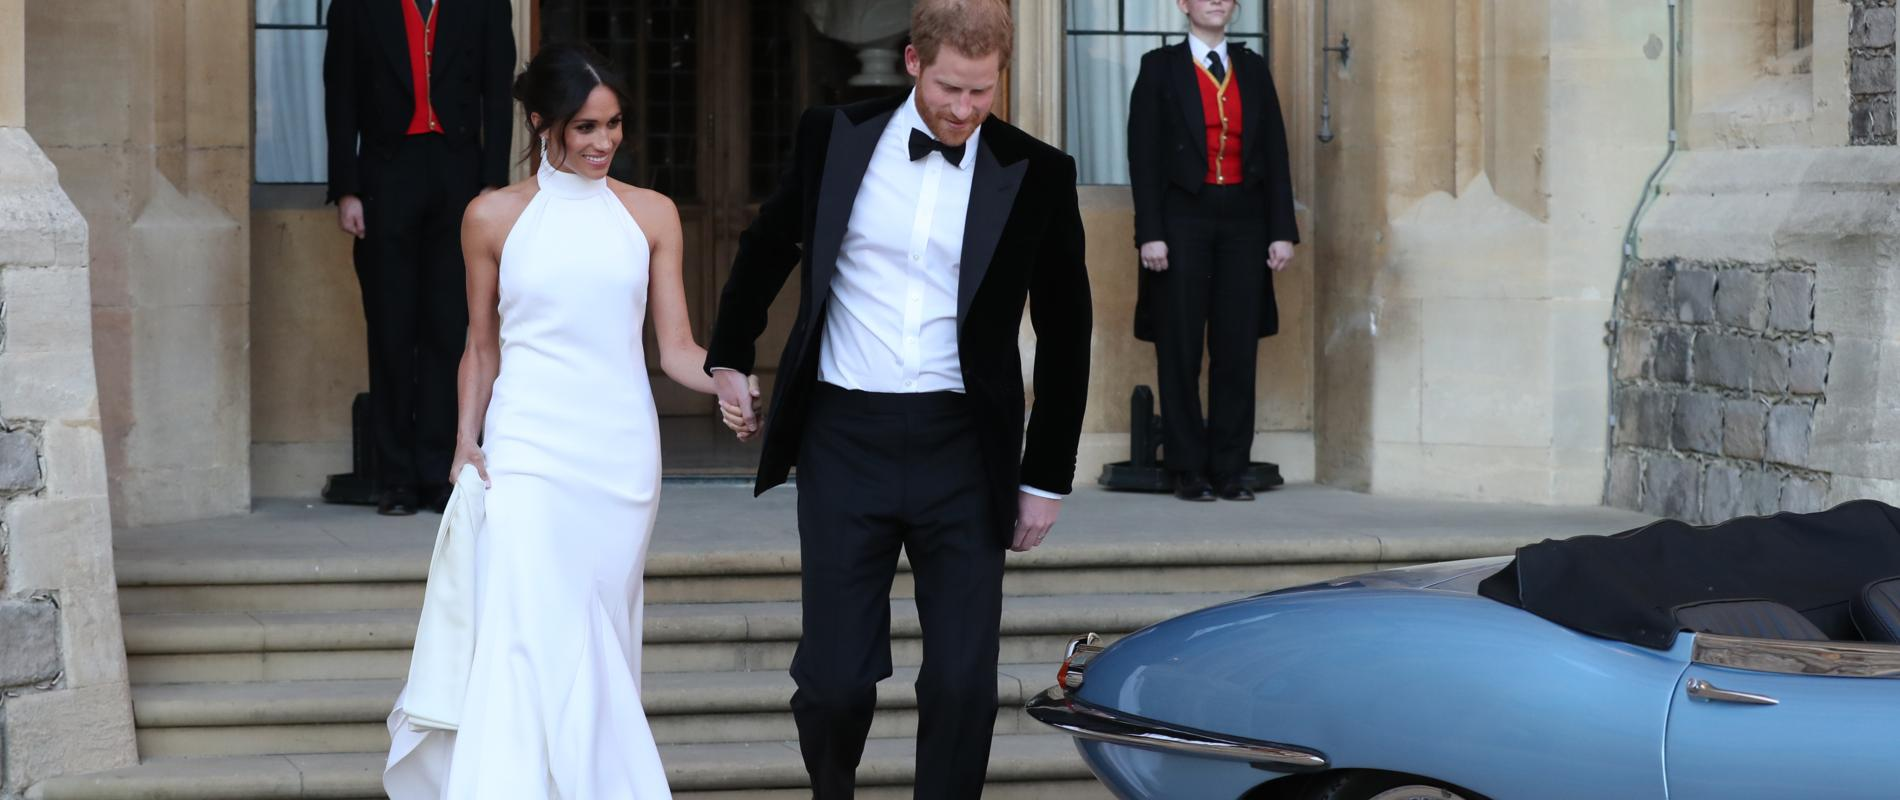 Our Favourite Moments From The Princely Wedding Of Harry And Meghan